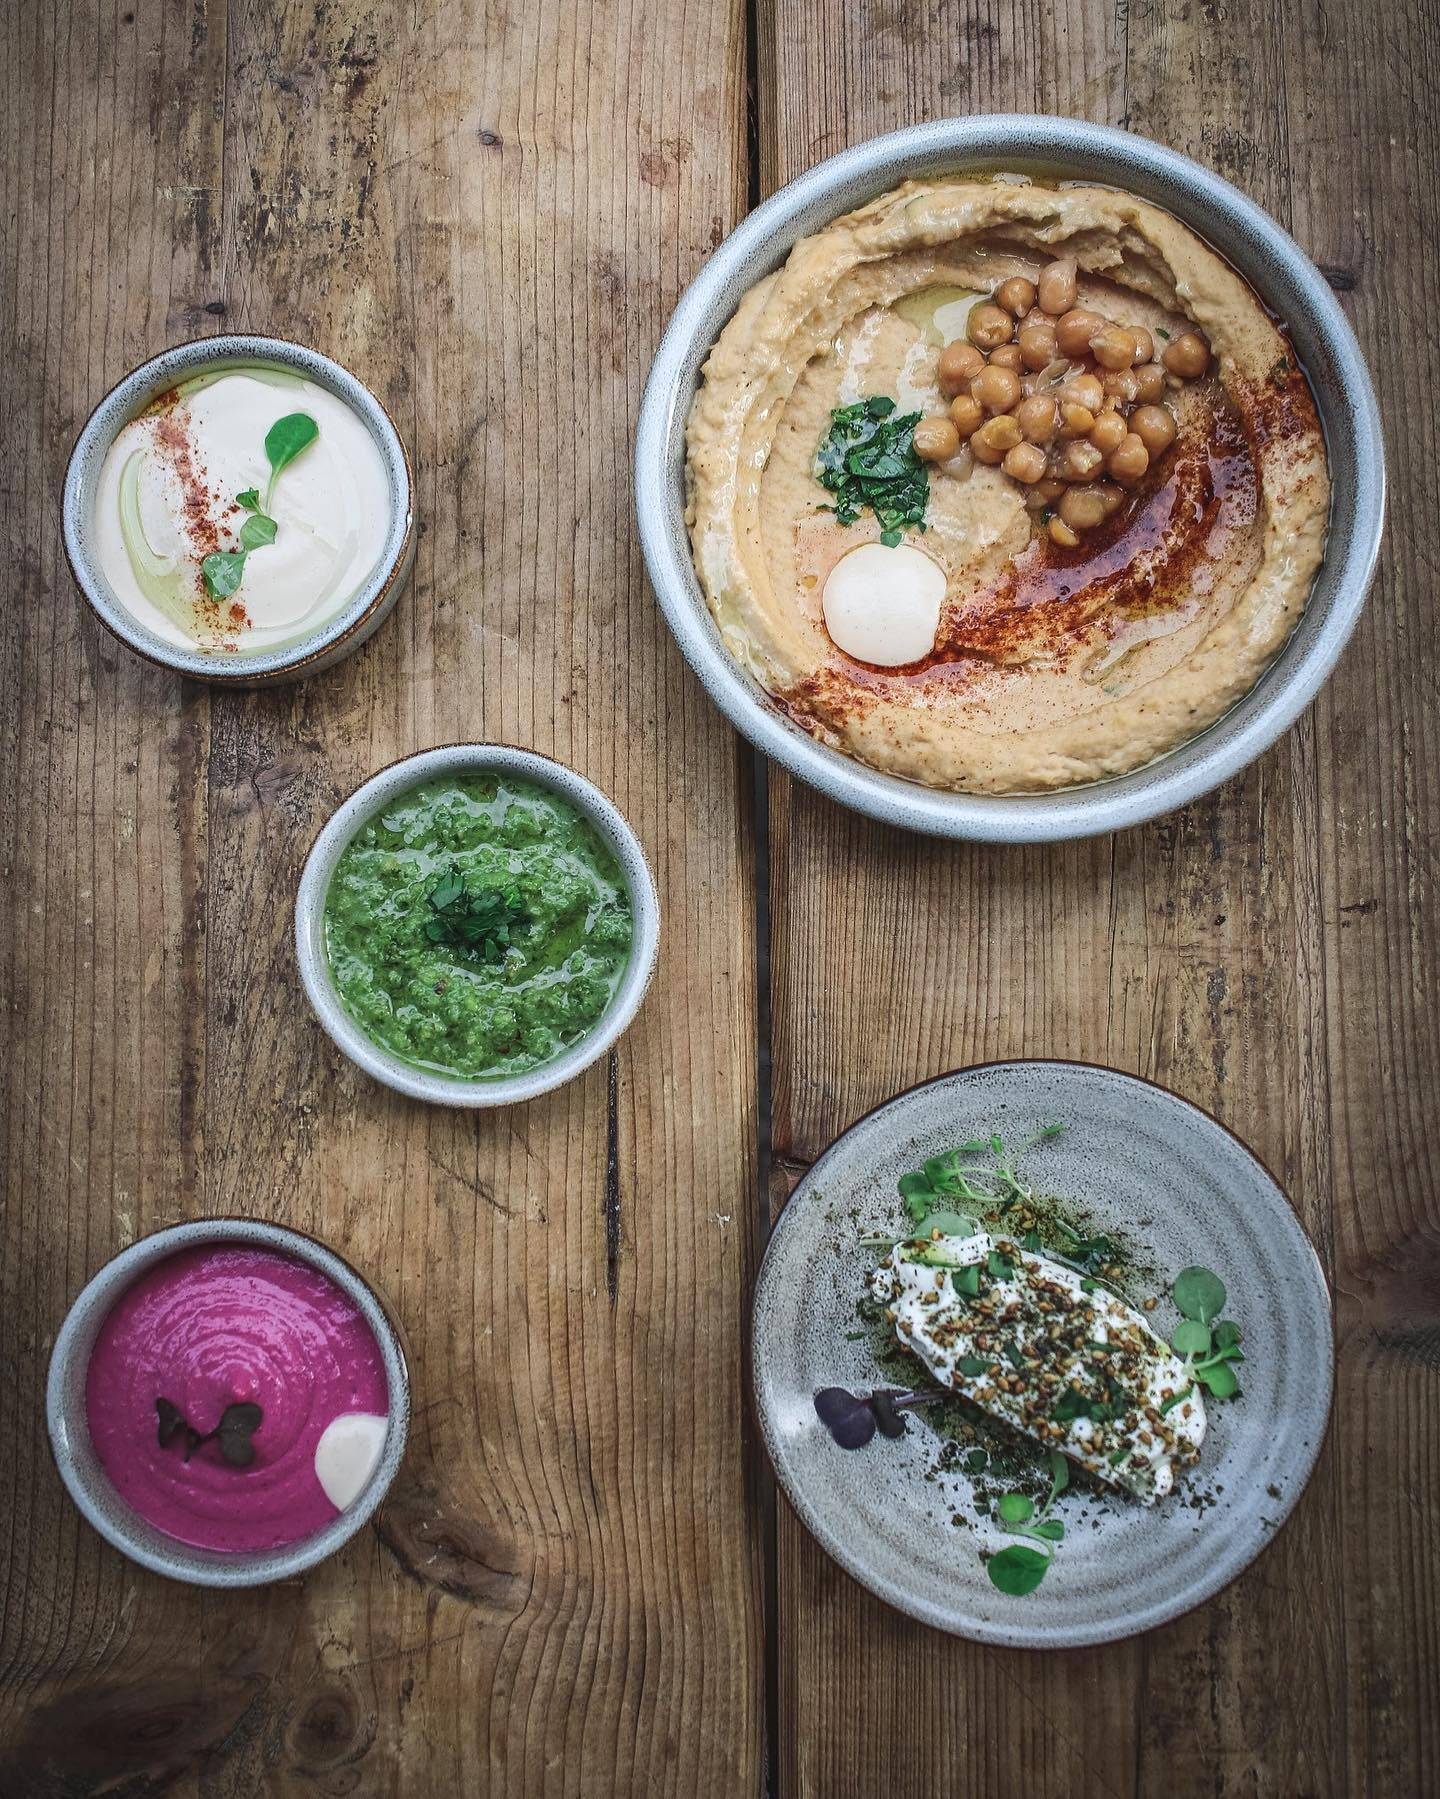 Hummus and dips served at Gordon. Zhug hot sauce, labaneh and beetroot dip in bowls on a wooden table